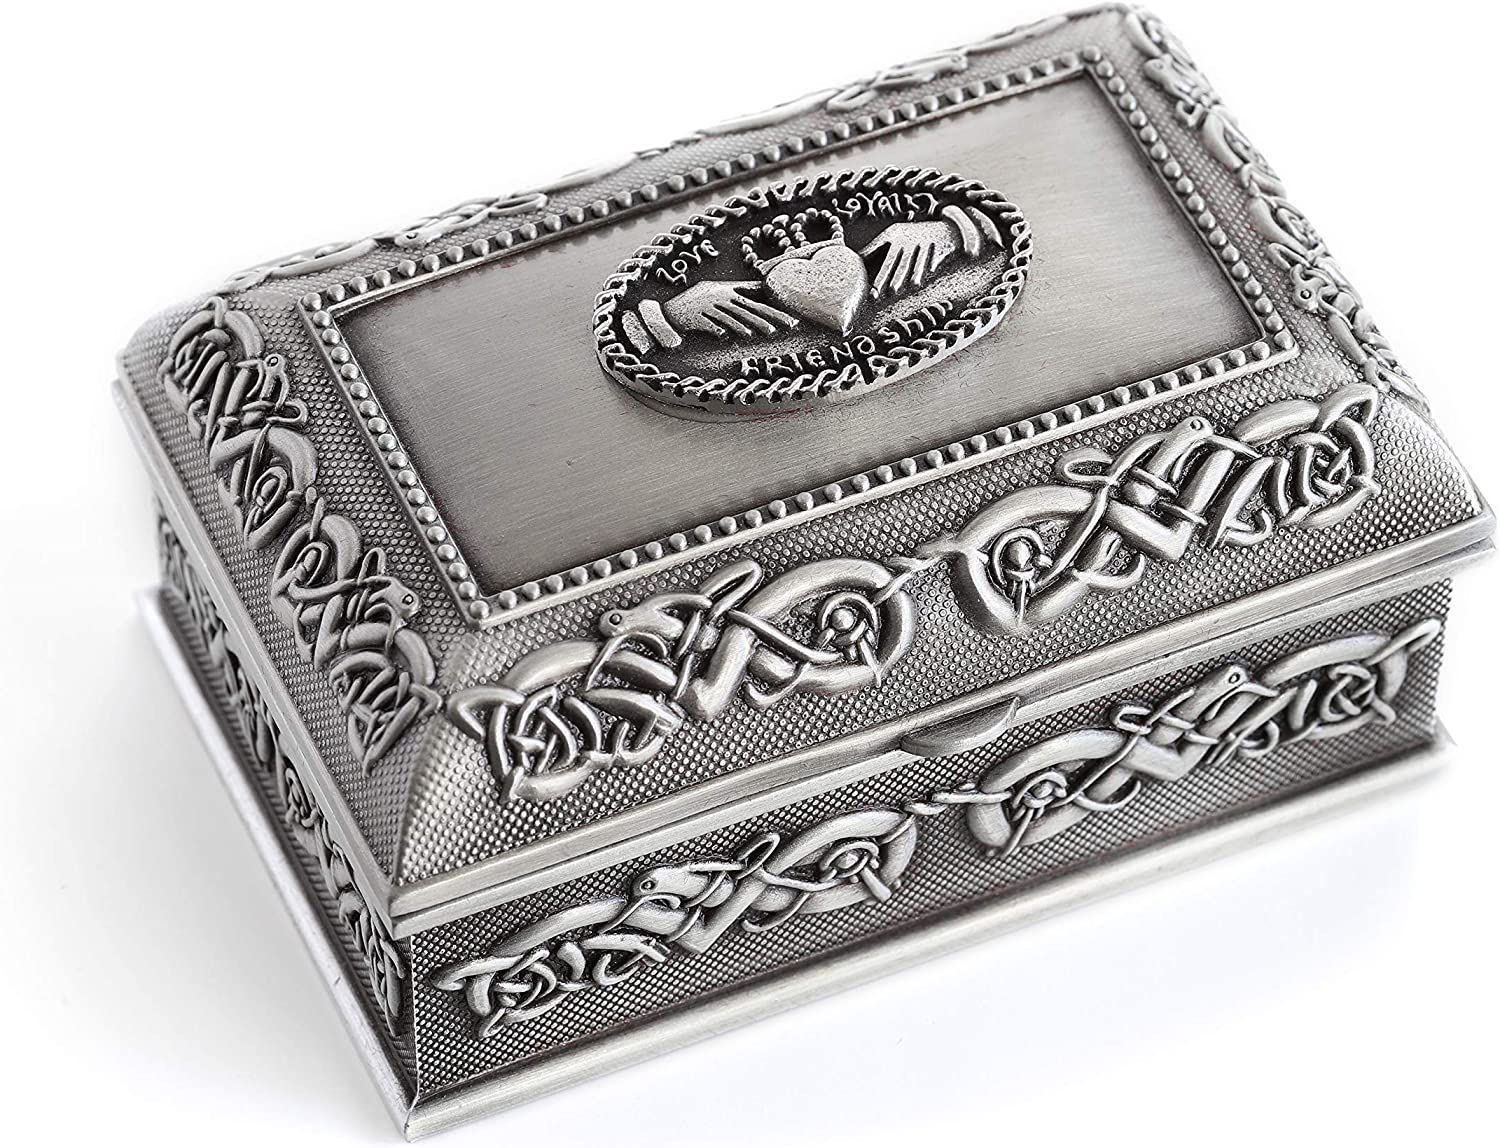 Biddy Murphy Claddagh Jewelry Box Square Small 3 1 2  x 2 1 4  x 2  Pewter Made in Ireland